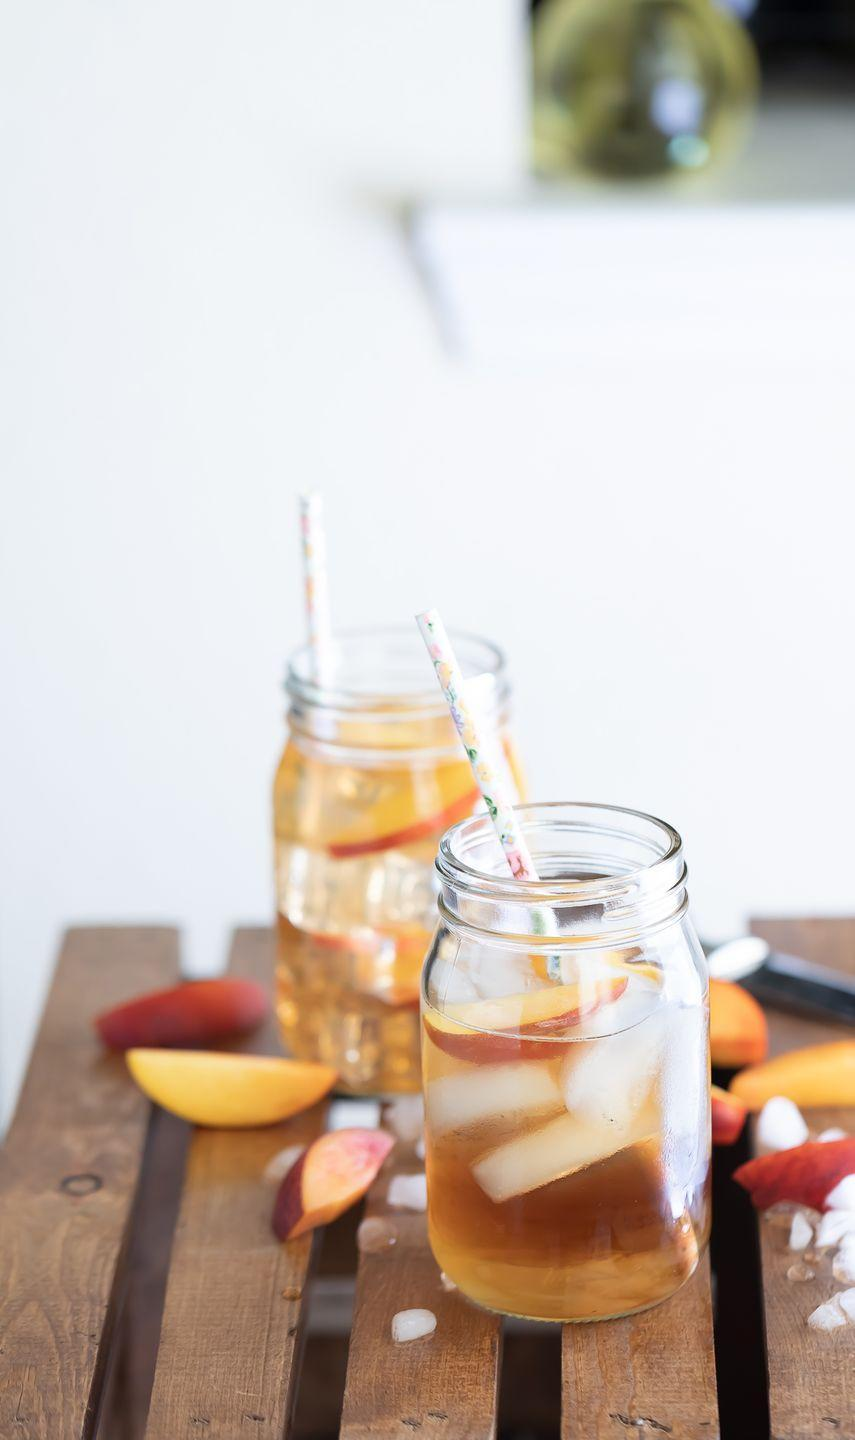 """<p>This Long Island Iced Tea has a Southern twist thanks to a splash of peach liqueur. It's light, refreshing, and perfect for drinking outdoors.</p><p><strong>Get the recipe at <a href=""""https://savoryspicerack.com/georgia-peach-cocktail/"""" rel=""""nofollow noopener"""" target=""""_blank"""" data-ylk=""""slk:Savory Spice Rack"""" class=""""link rapid-noclick-resp"""">Savory Spice Rack</a>.</strong><br></p><p><a class=""""link rapid-noclick-resp"""" href=""""https://go.redirectingat.com?id=74968X1596630&url=https%3A%2F%2Fwww.walmart.com%2Fsearch%2F%3Fquery%3Dpioneer%2Bwoman%2Bcooking%2Btools&sref=https%3A%2F%2Fwww.thepioneerwoman.com%2Ffood-cooking%2Fmeals-menus%2Fg36432840%2Ffourth-of-july-drinks%2F"""" rel=""""nofollow noopener"""" target=""""_blank"""" data-ylk=""""slk:SHOP COOKING TOOLS"""">SHOP COOKING TOOLS</a></p>"""